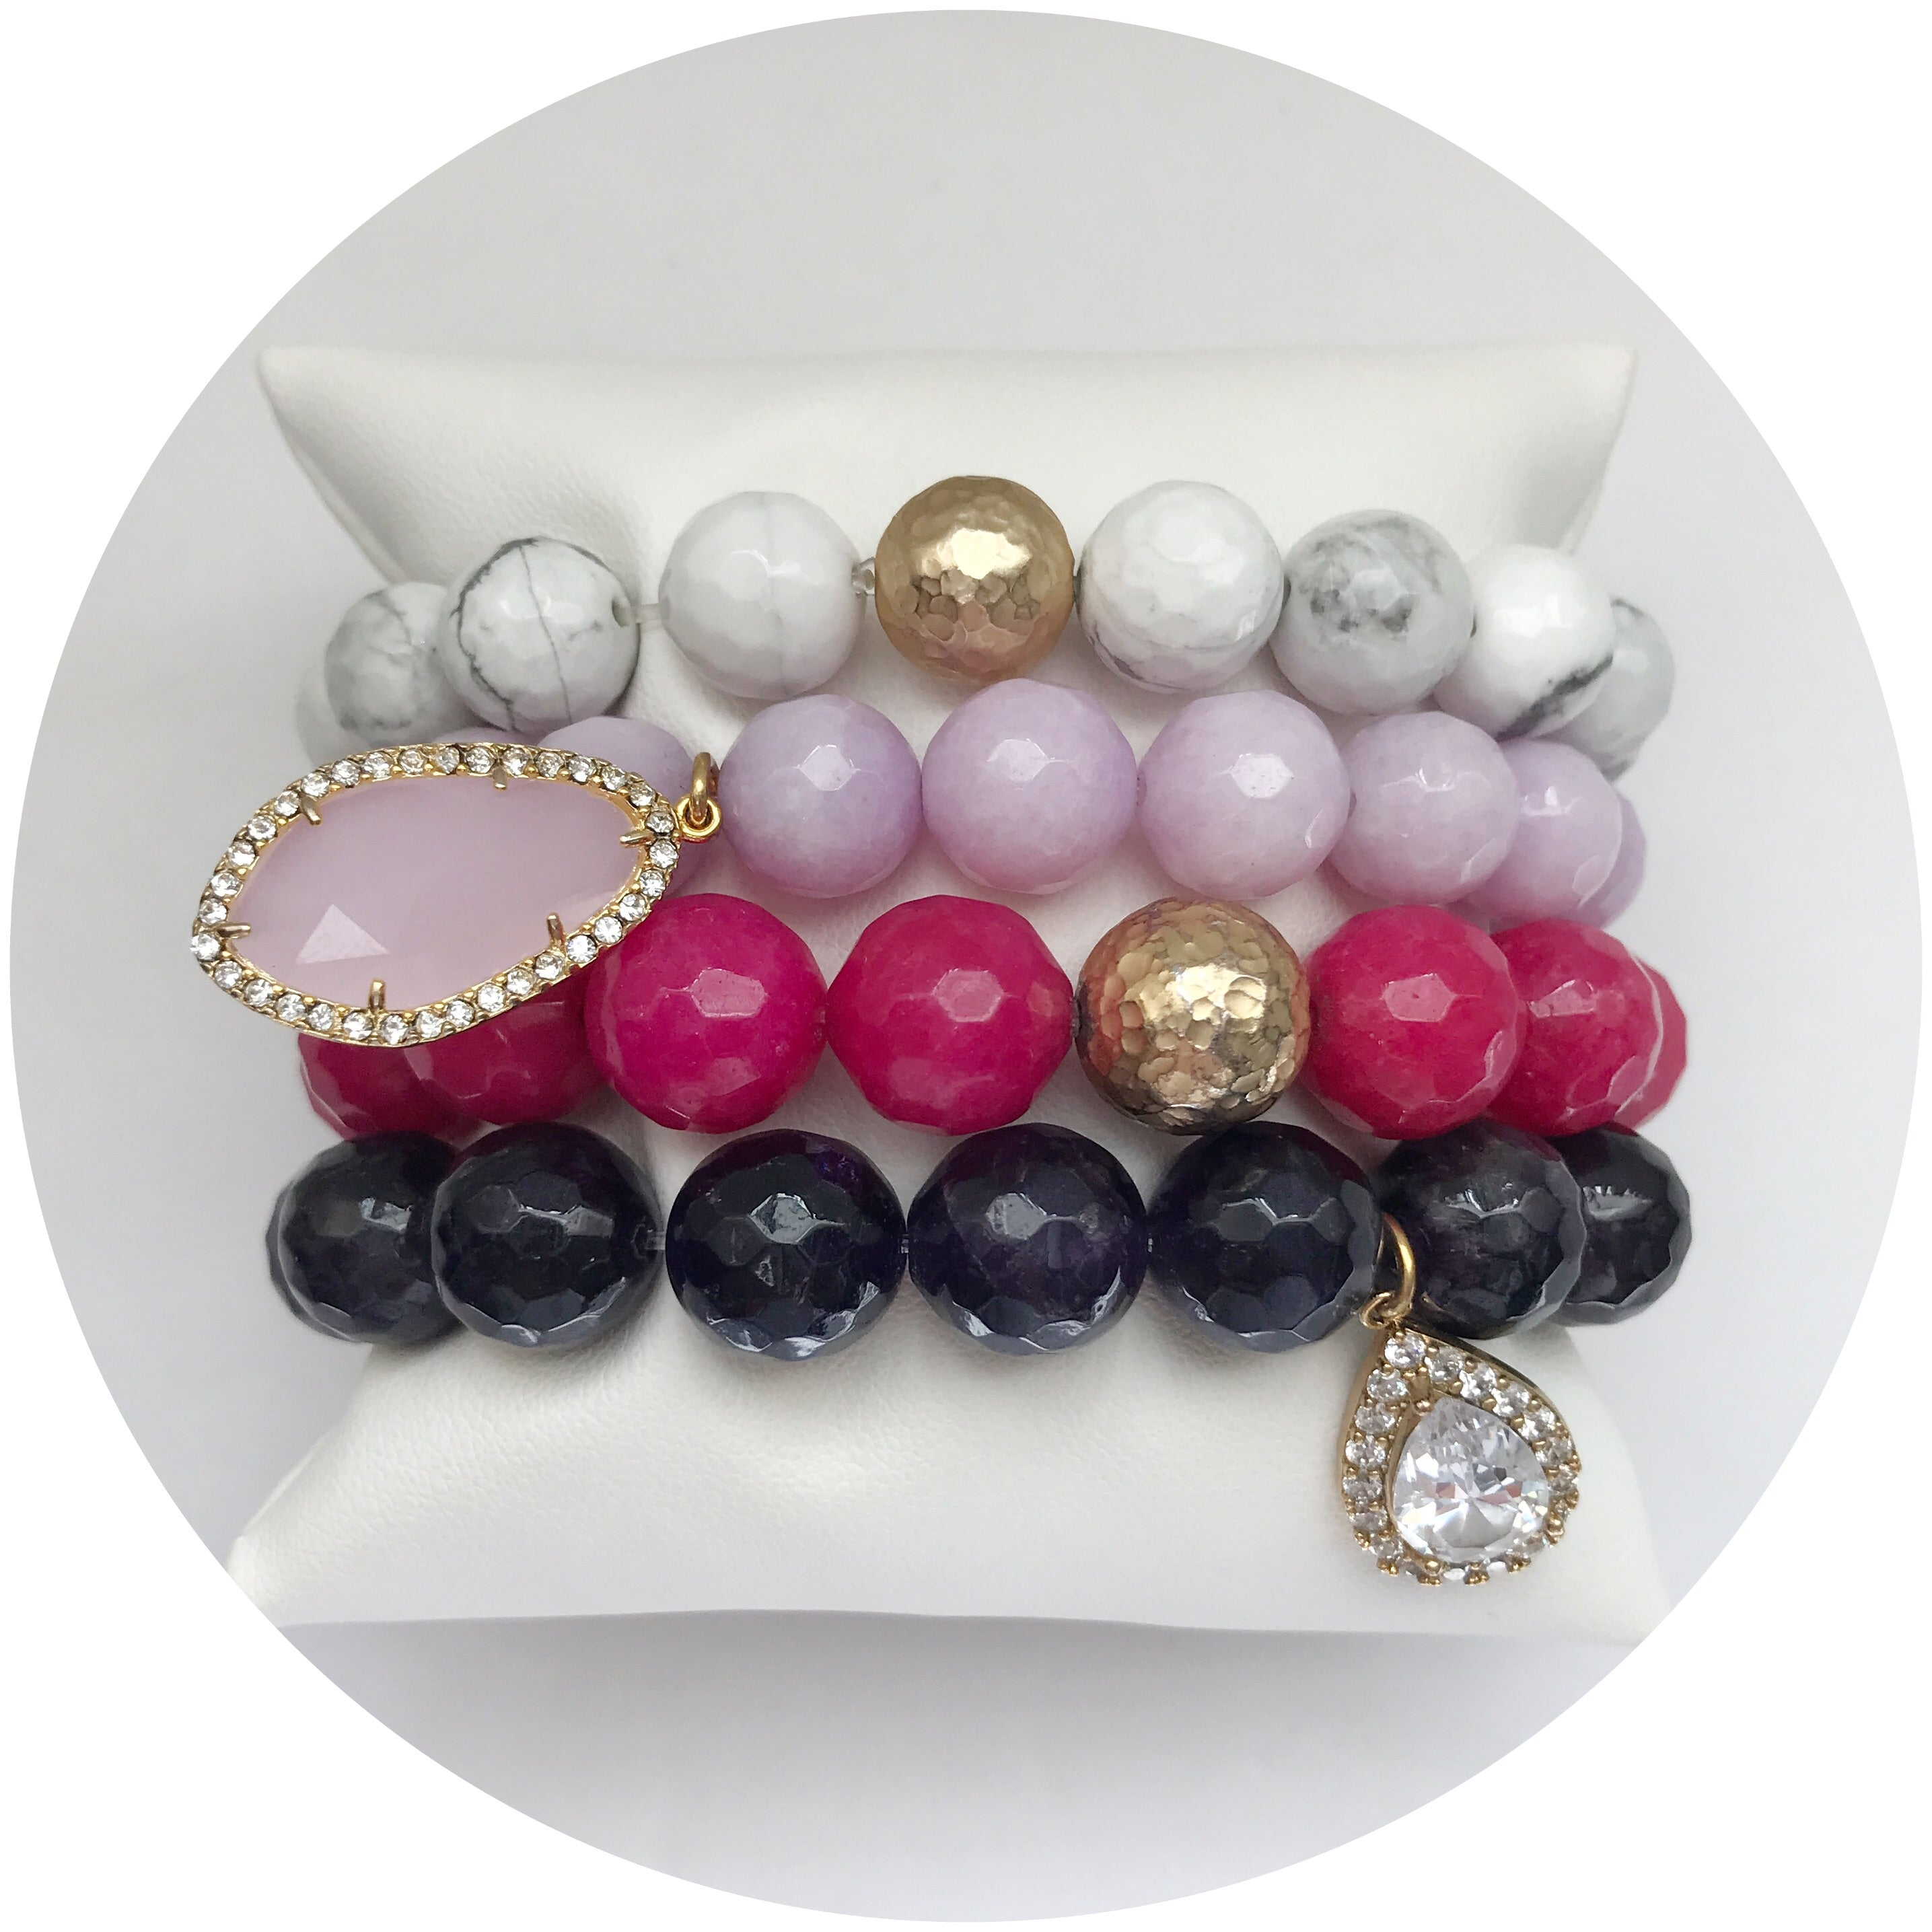 Berry Bliss Armparty - Oriana Lamarca LLC